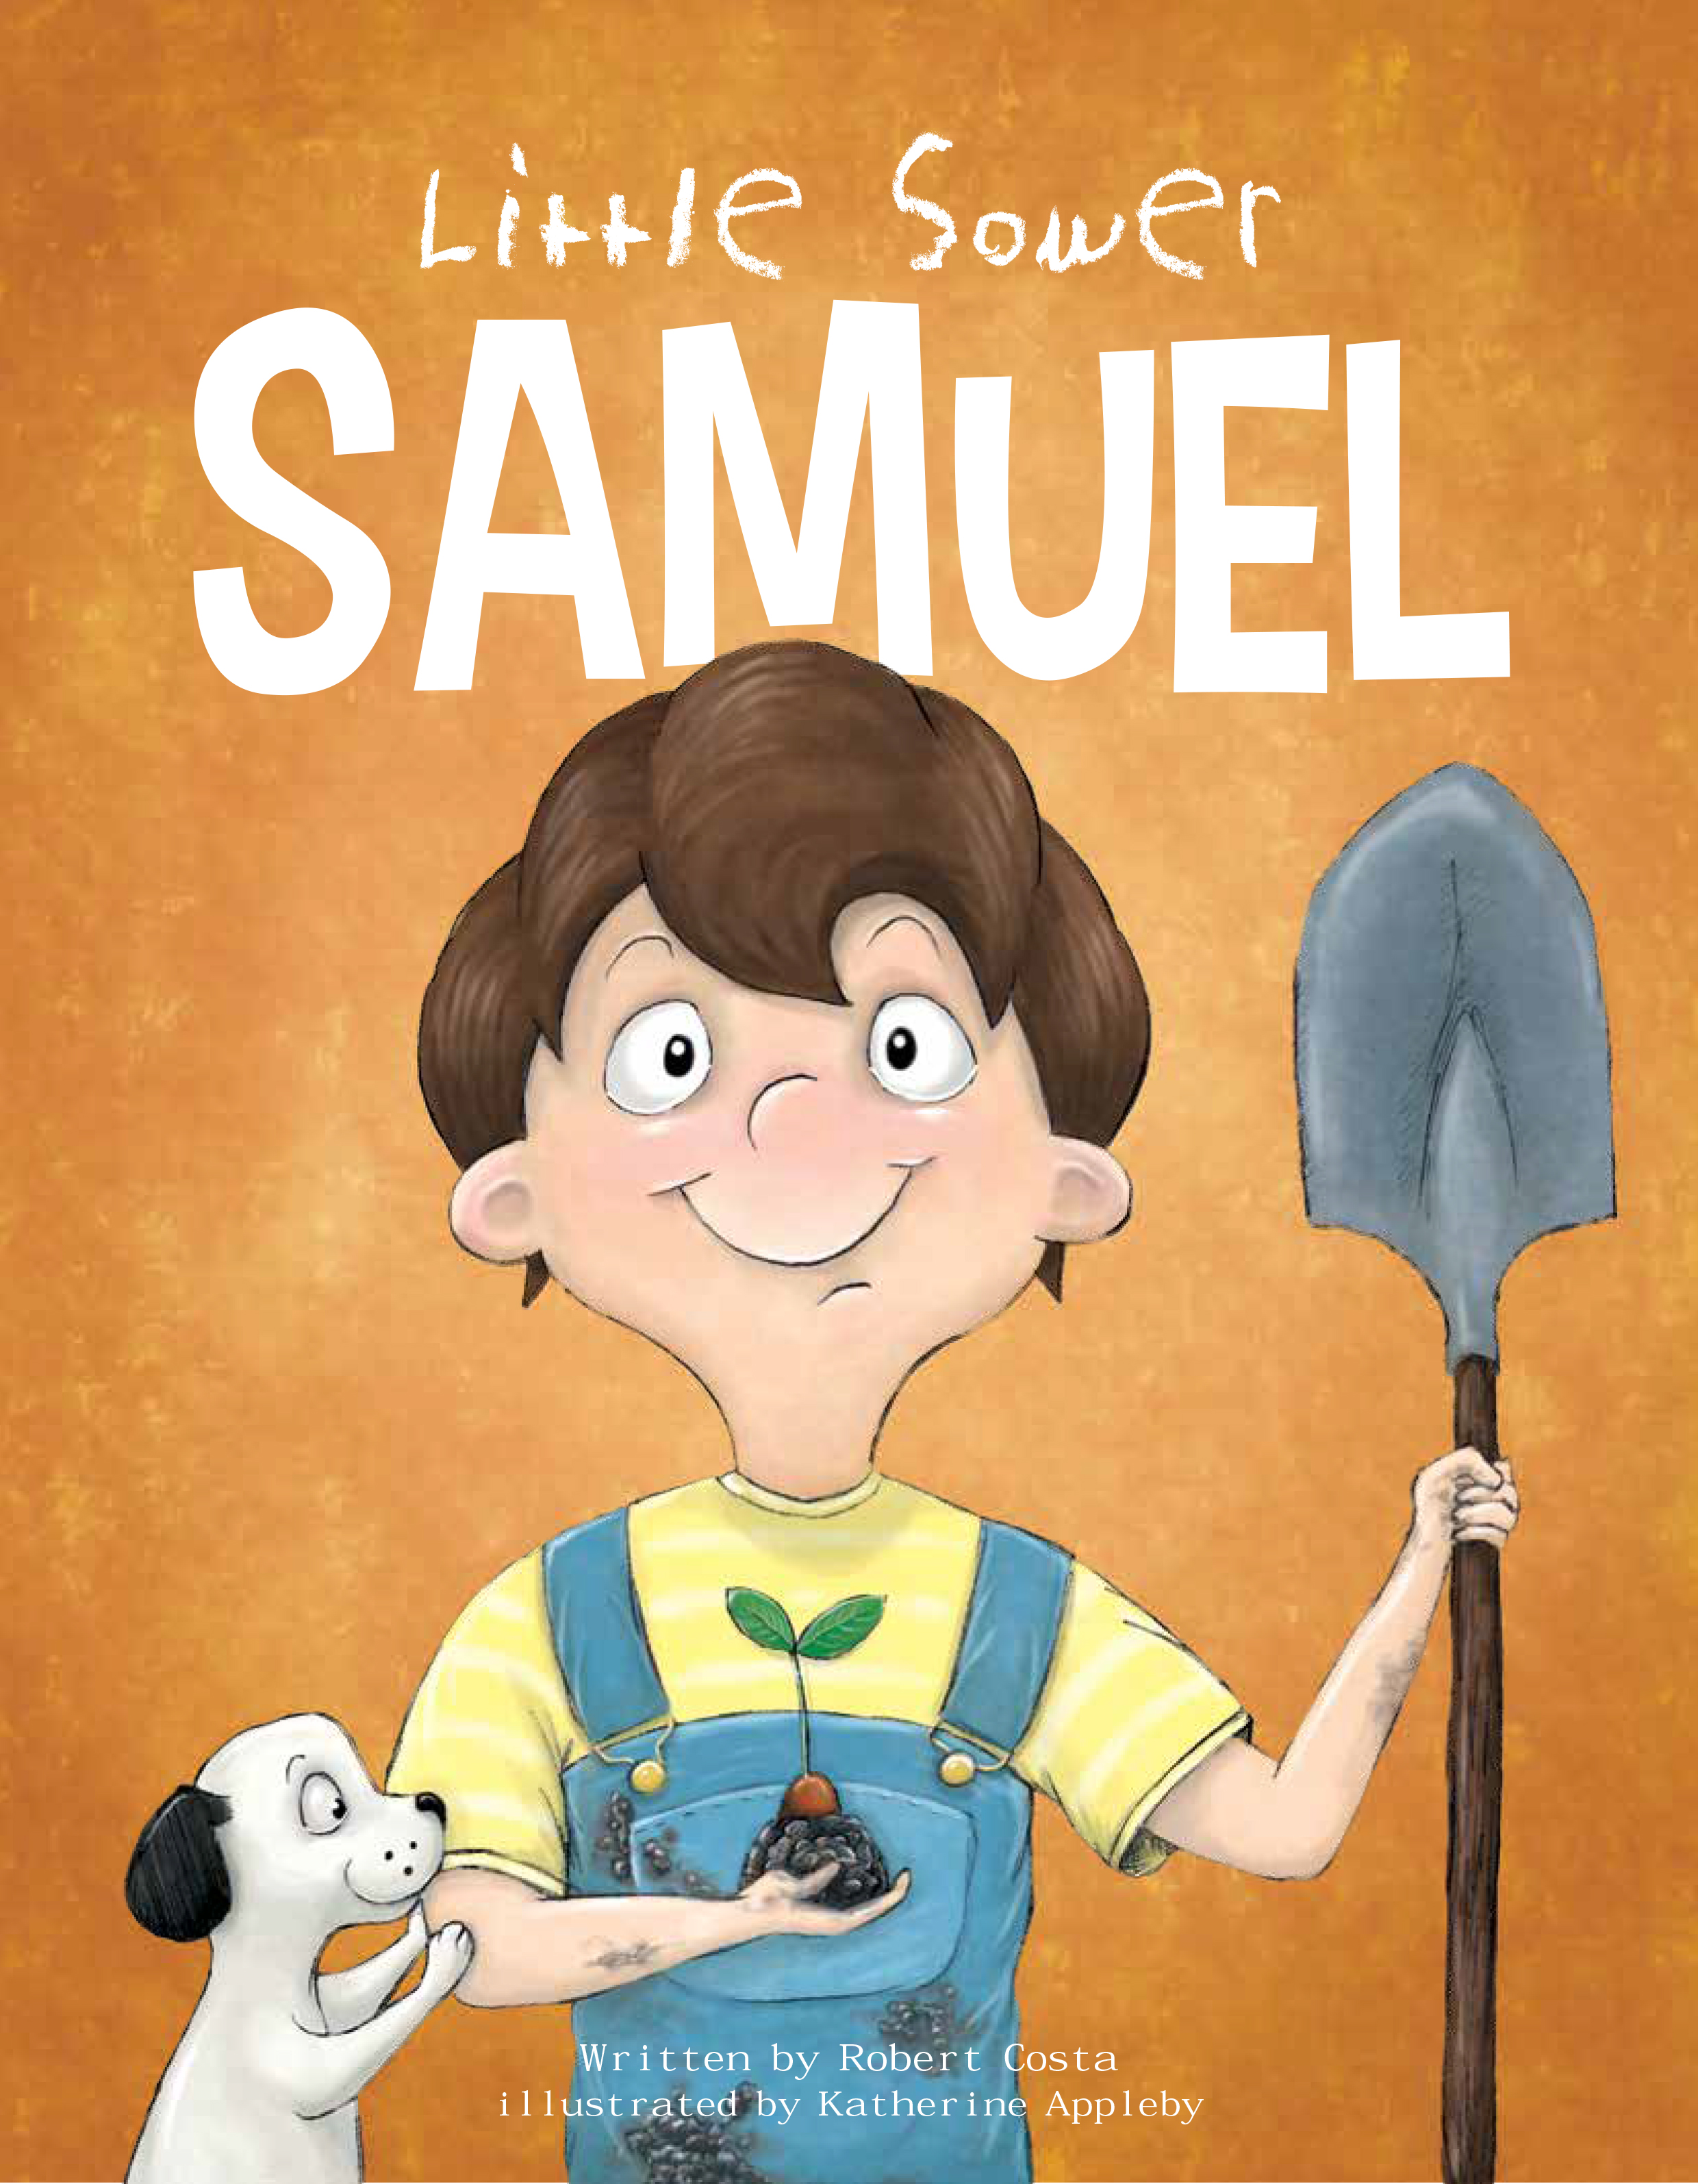 Children's Book: Little Sower Samuel